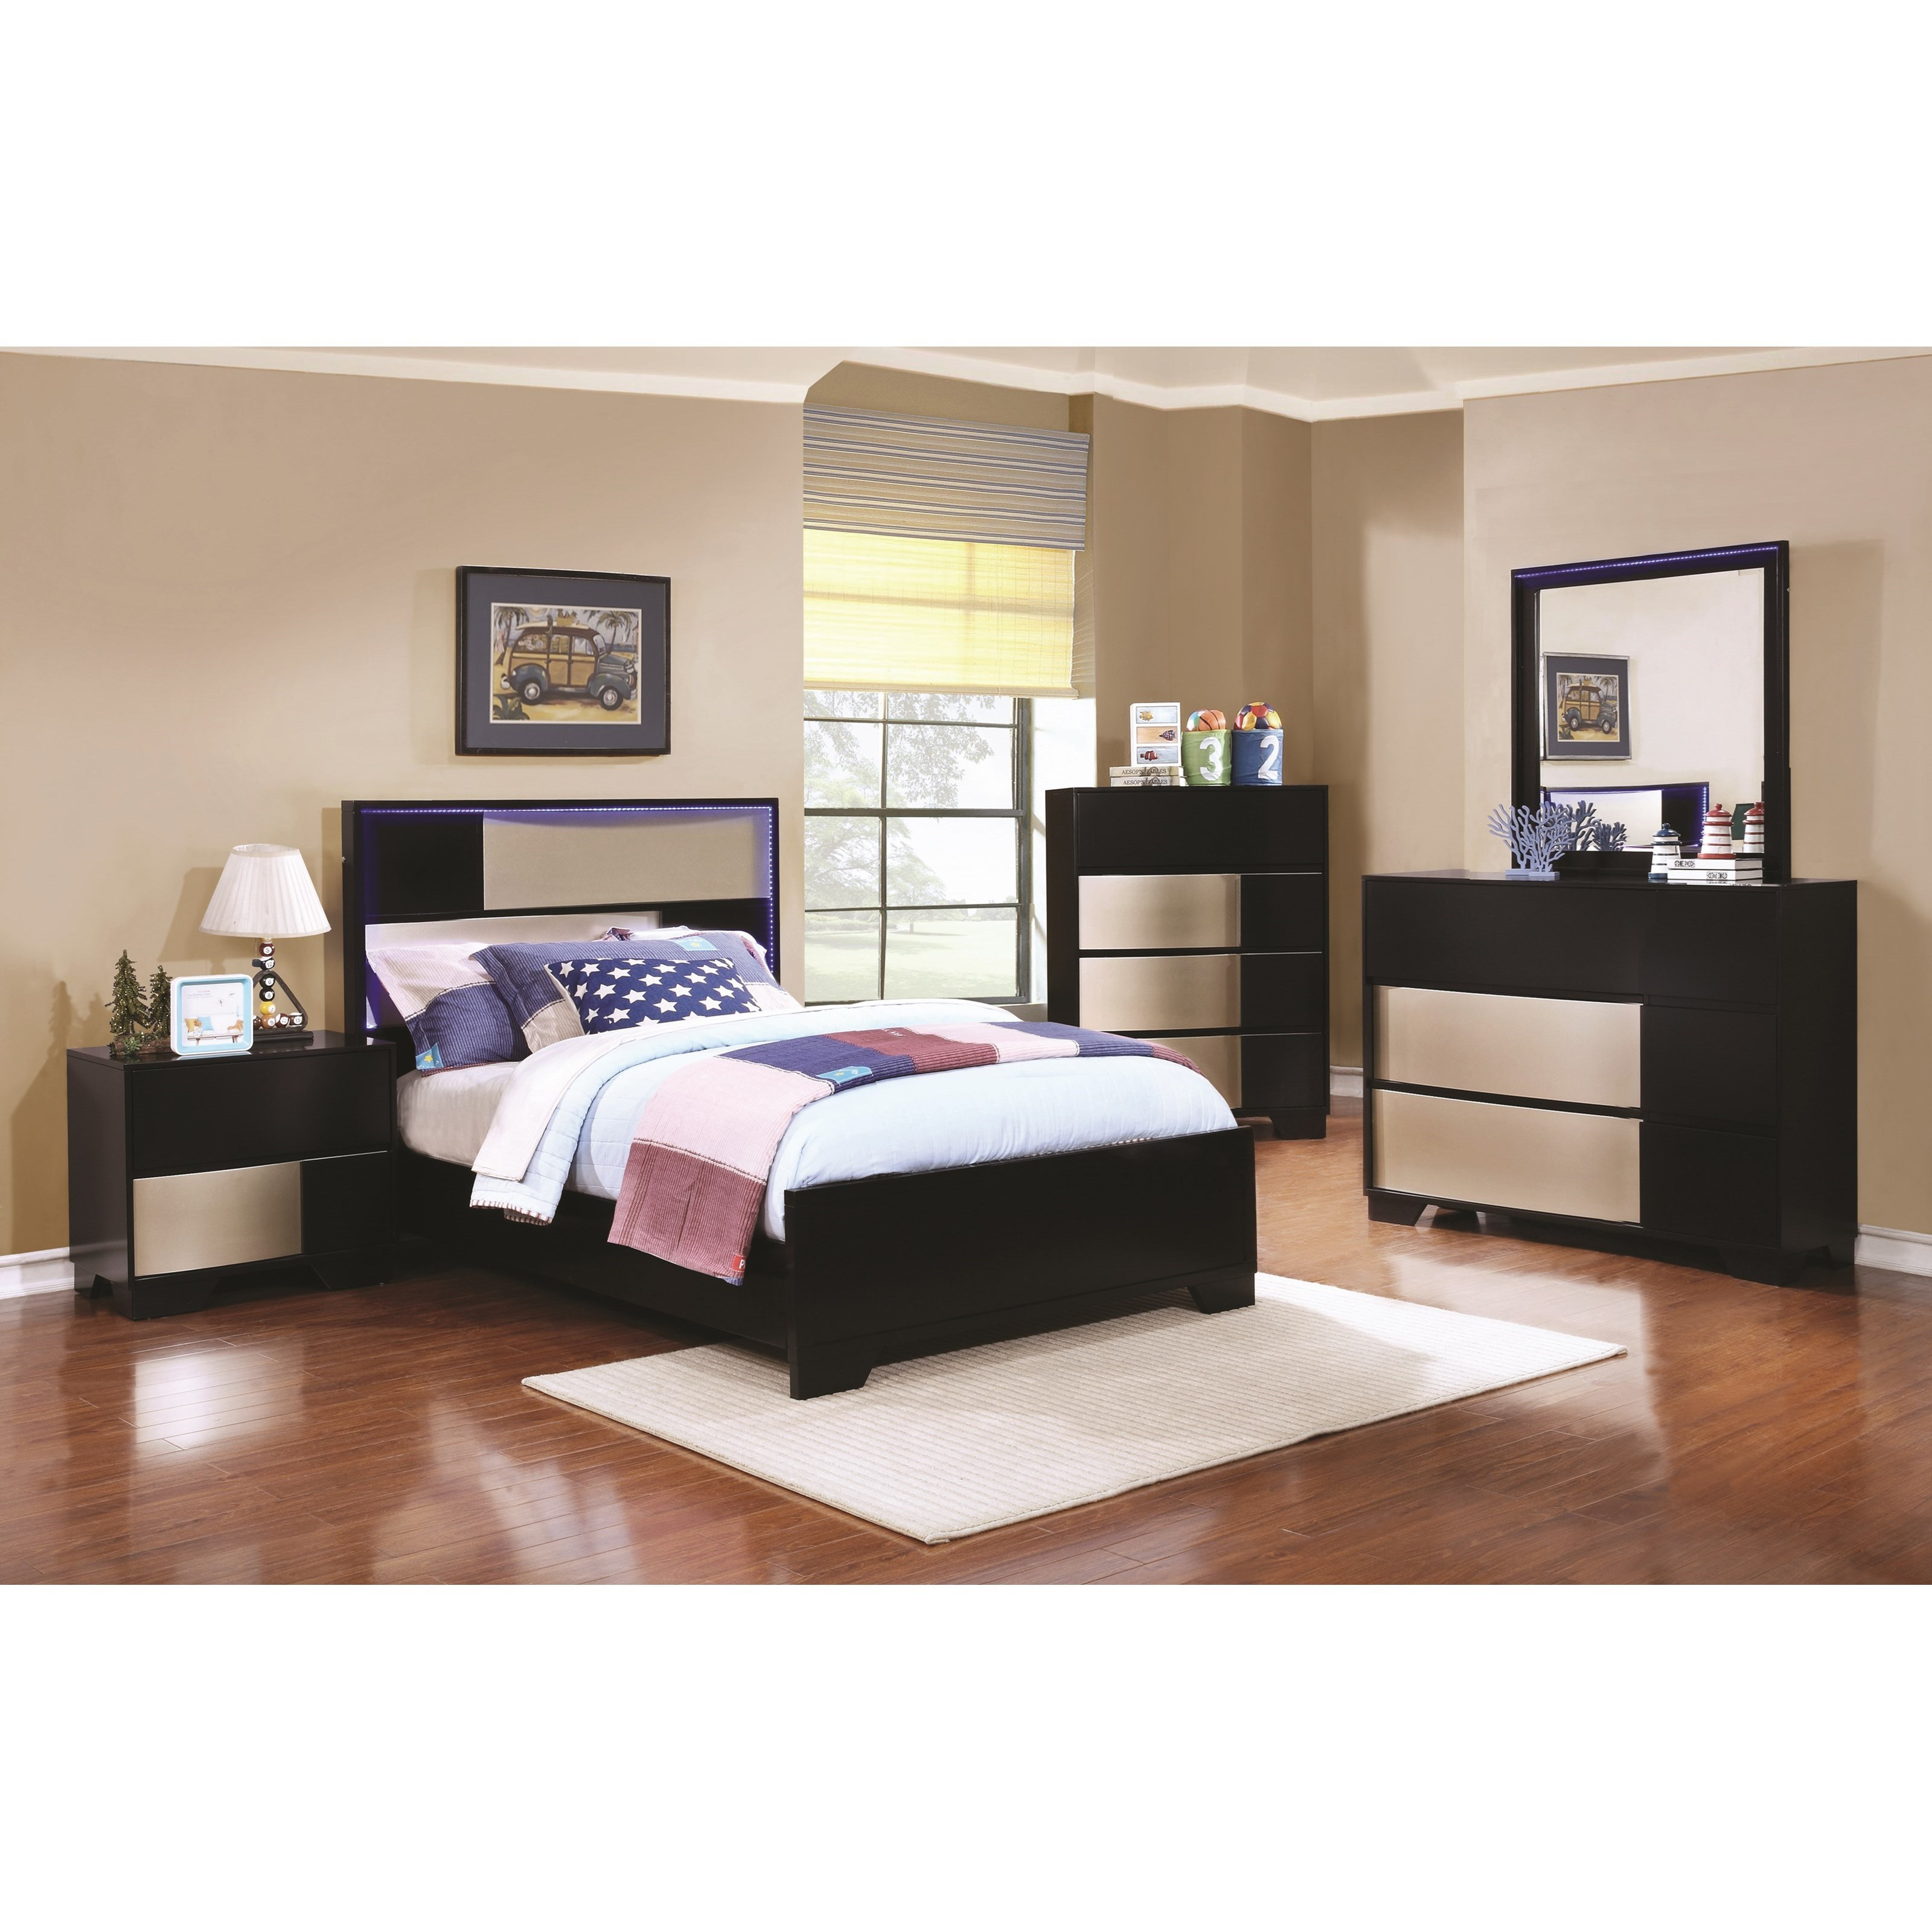 Coaster Havering Twin Bedroom Group - Item Number: 40087 T Bedroom Group 1